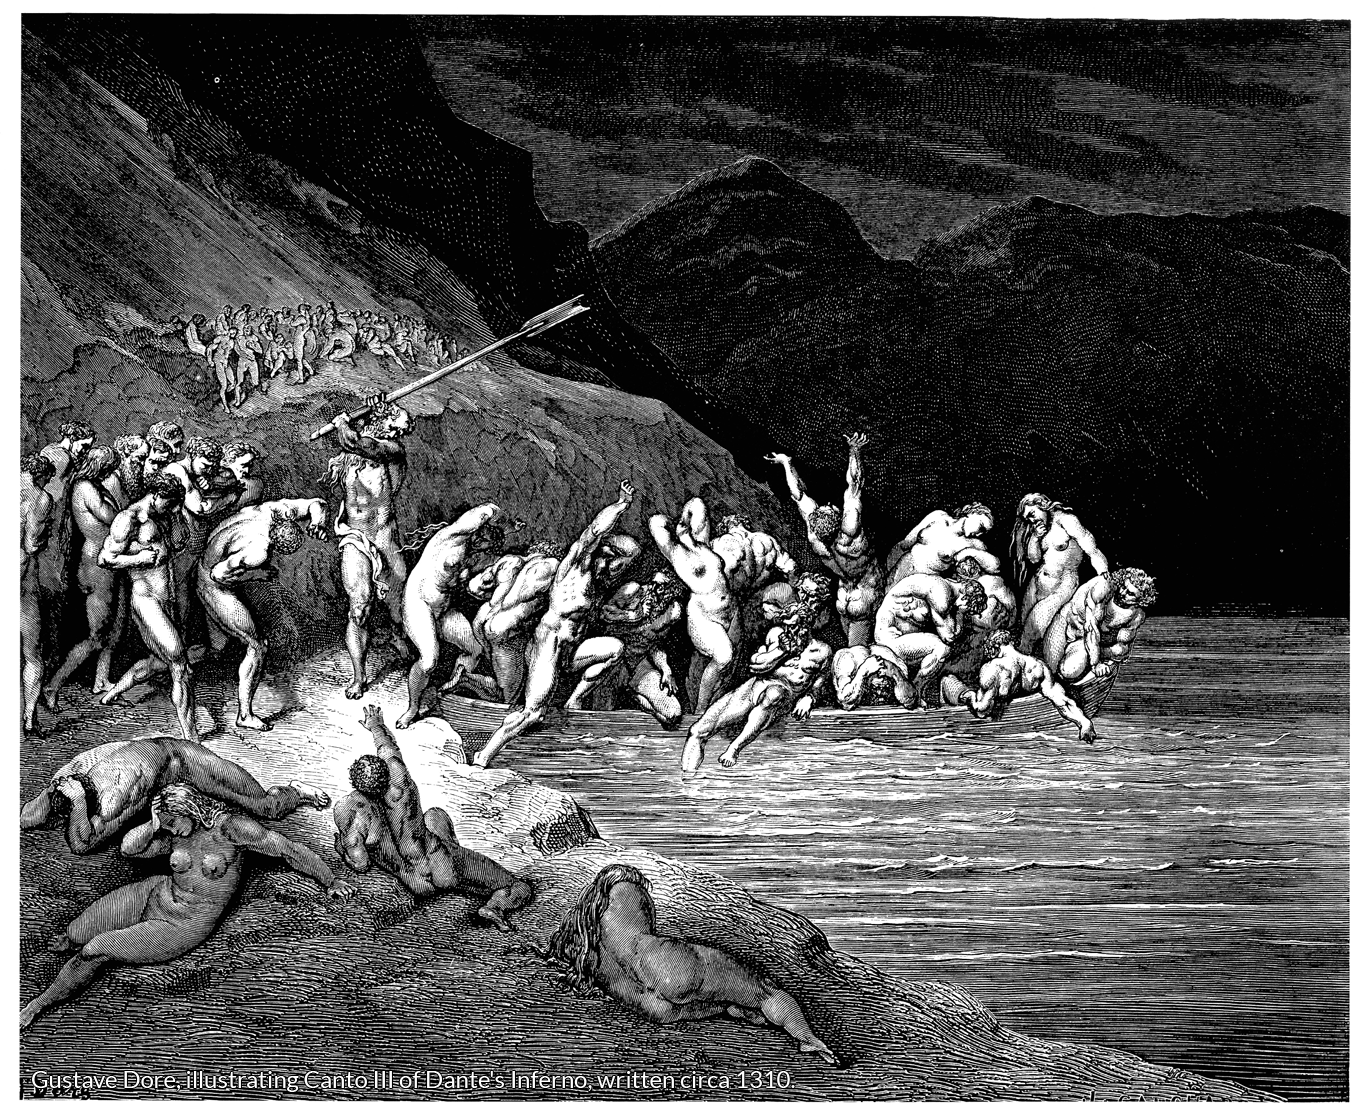 Gustave Dore, illustrating Canto III of Dante's Inferno, written circa 1310.